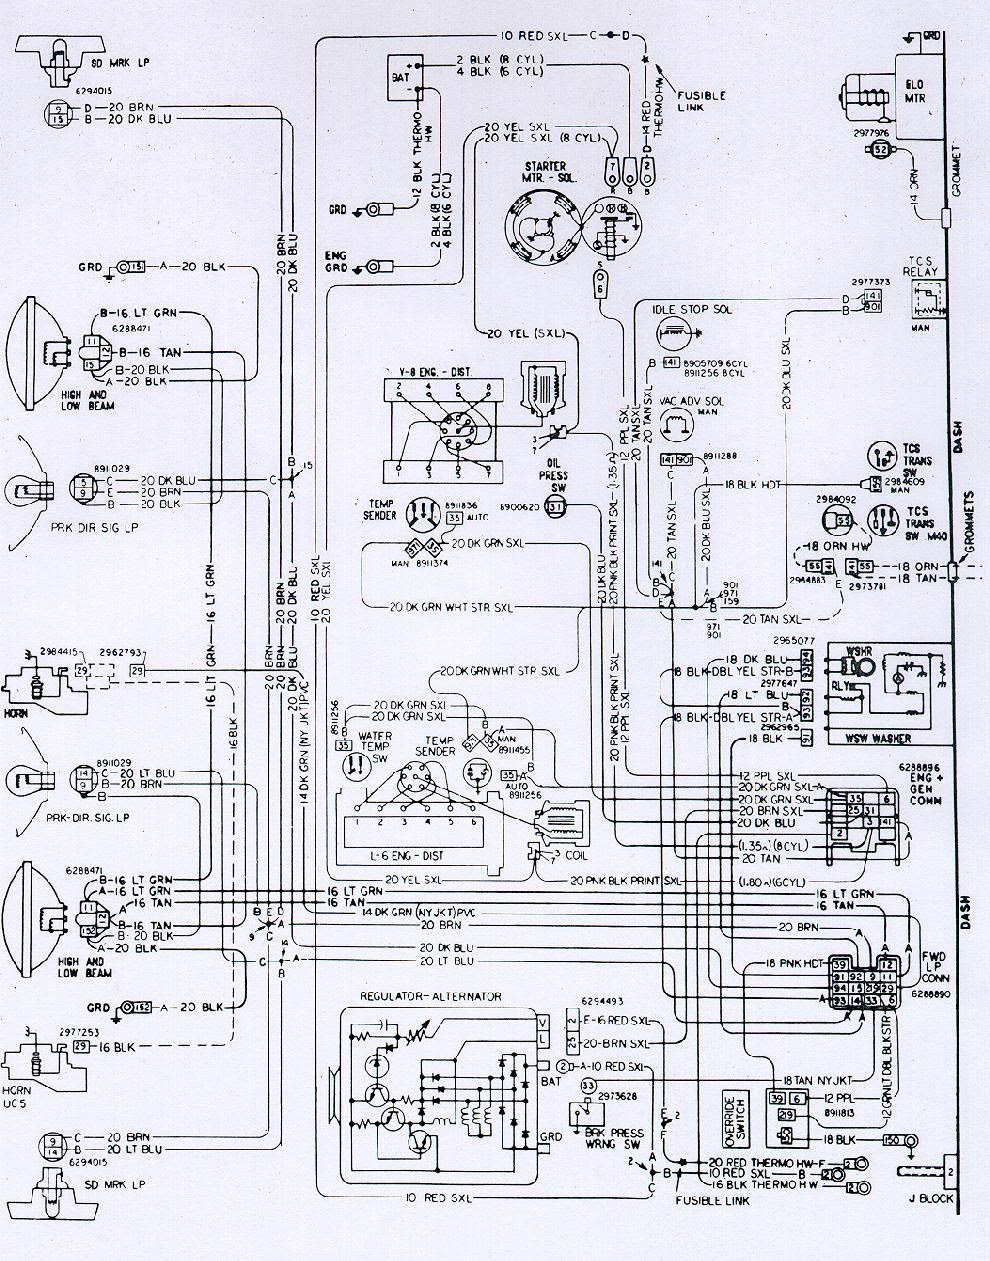 Wiring Diagram 1970 Camaro Wiring Diagram View A View A Zaafran It